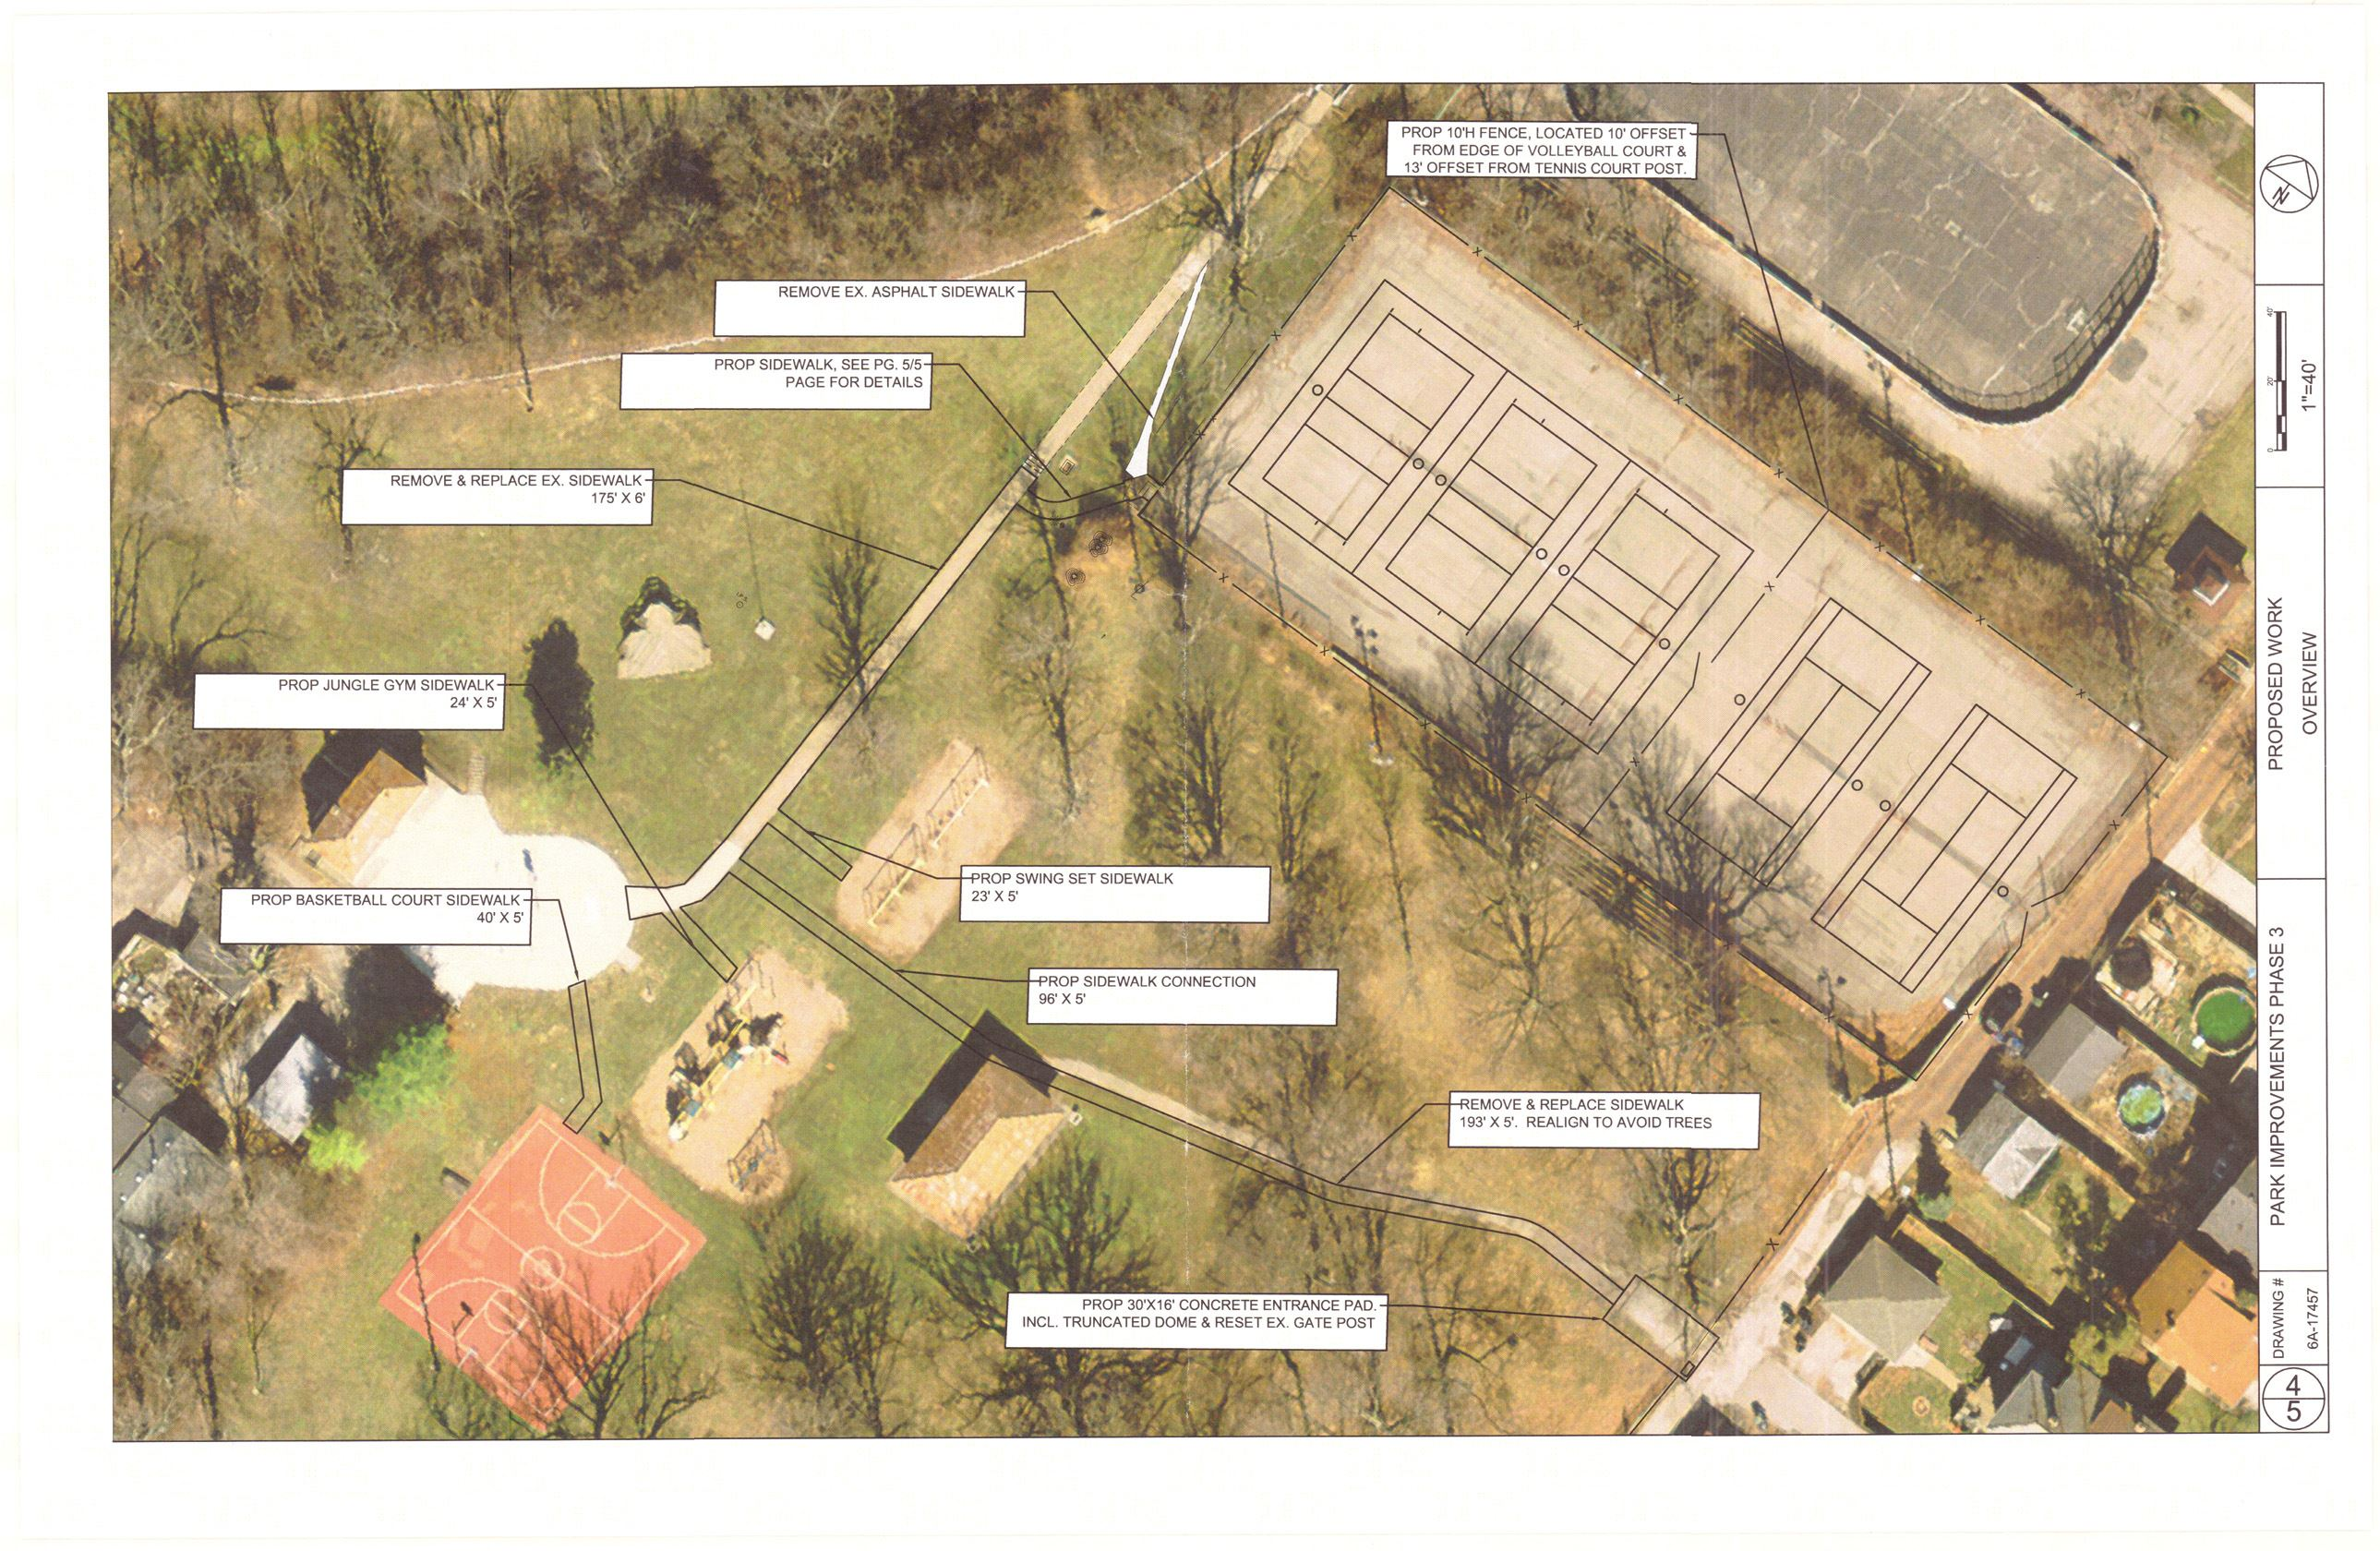 Map with proposed Walnut Hills park improvements